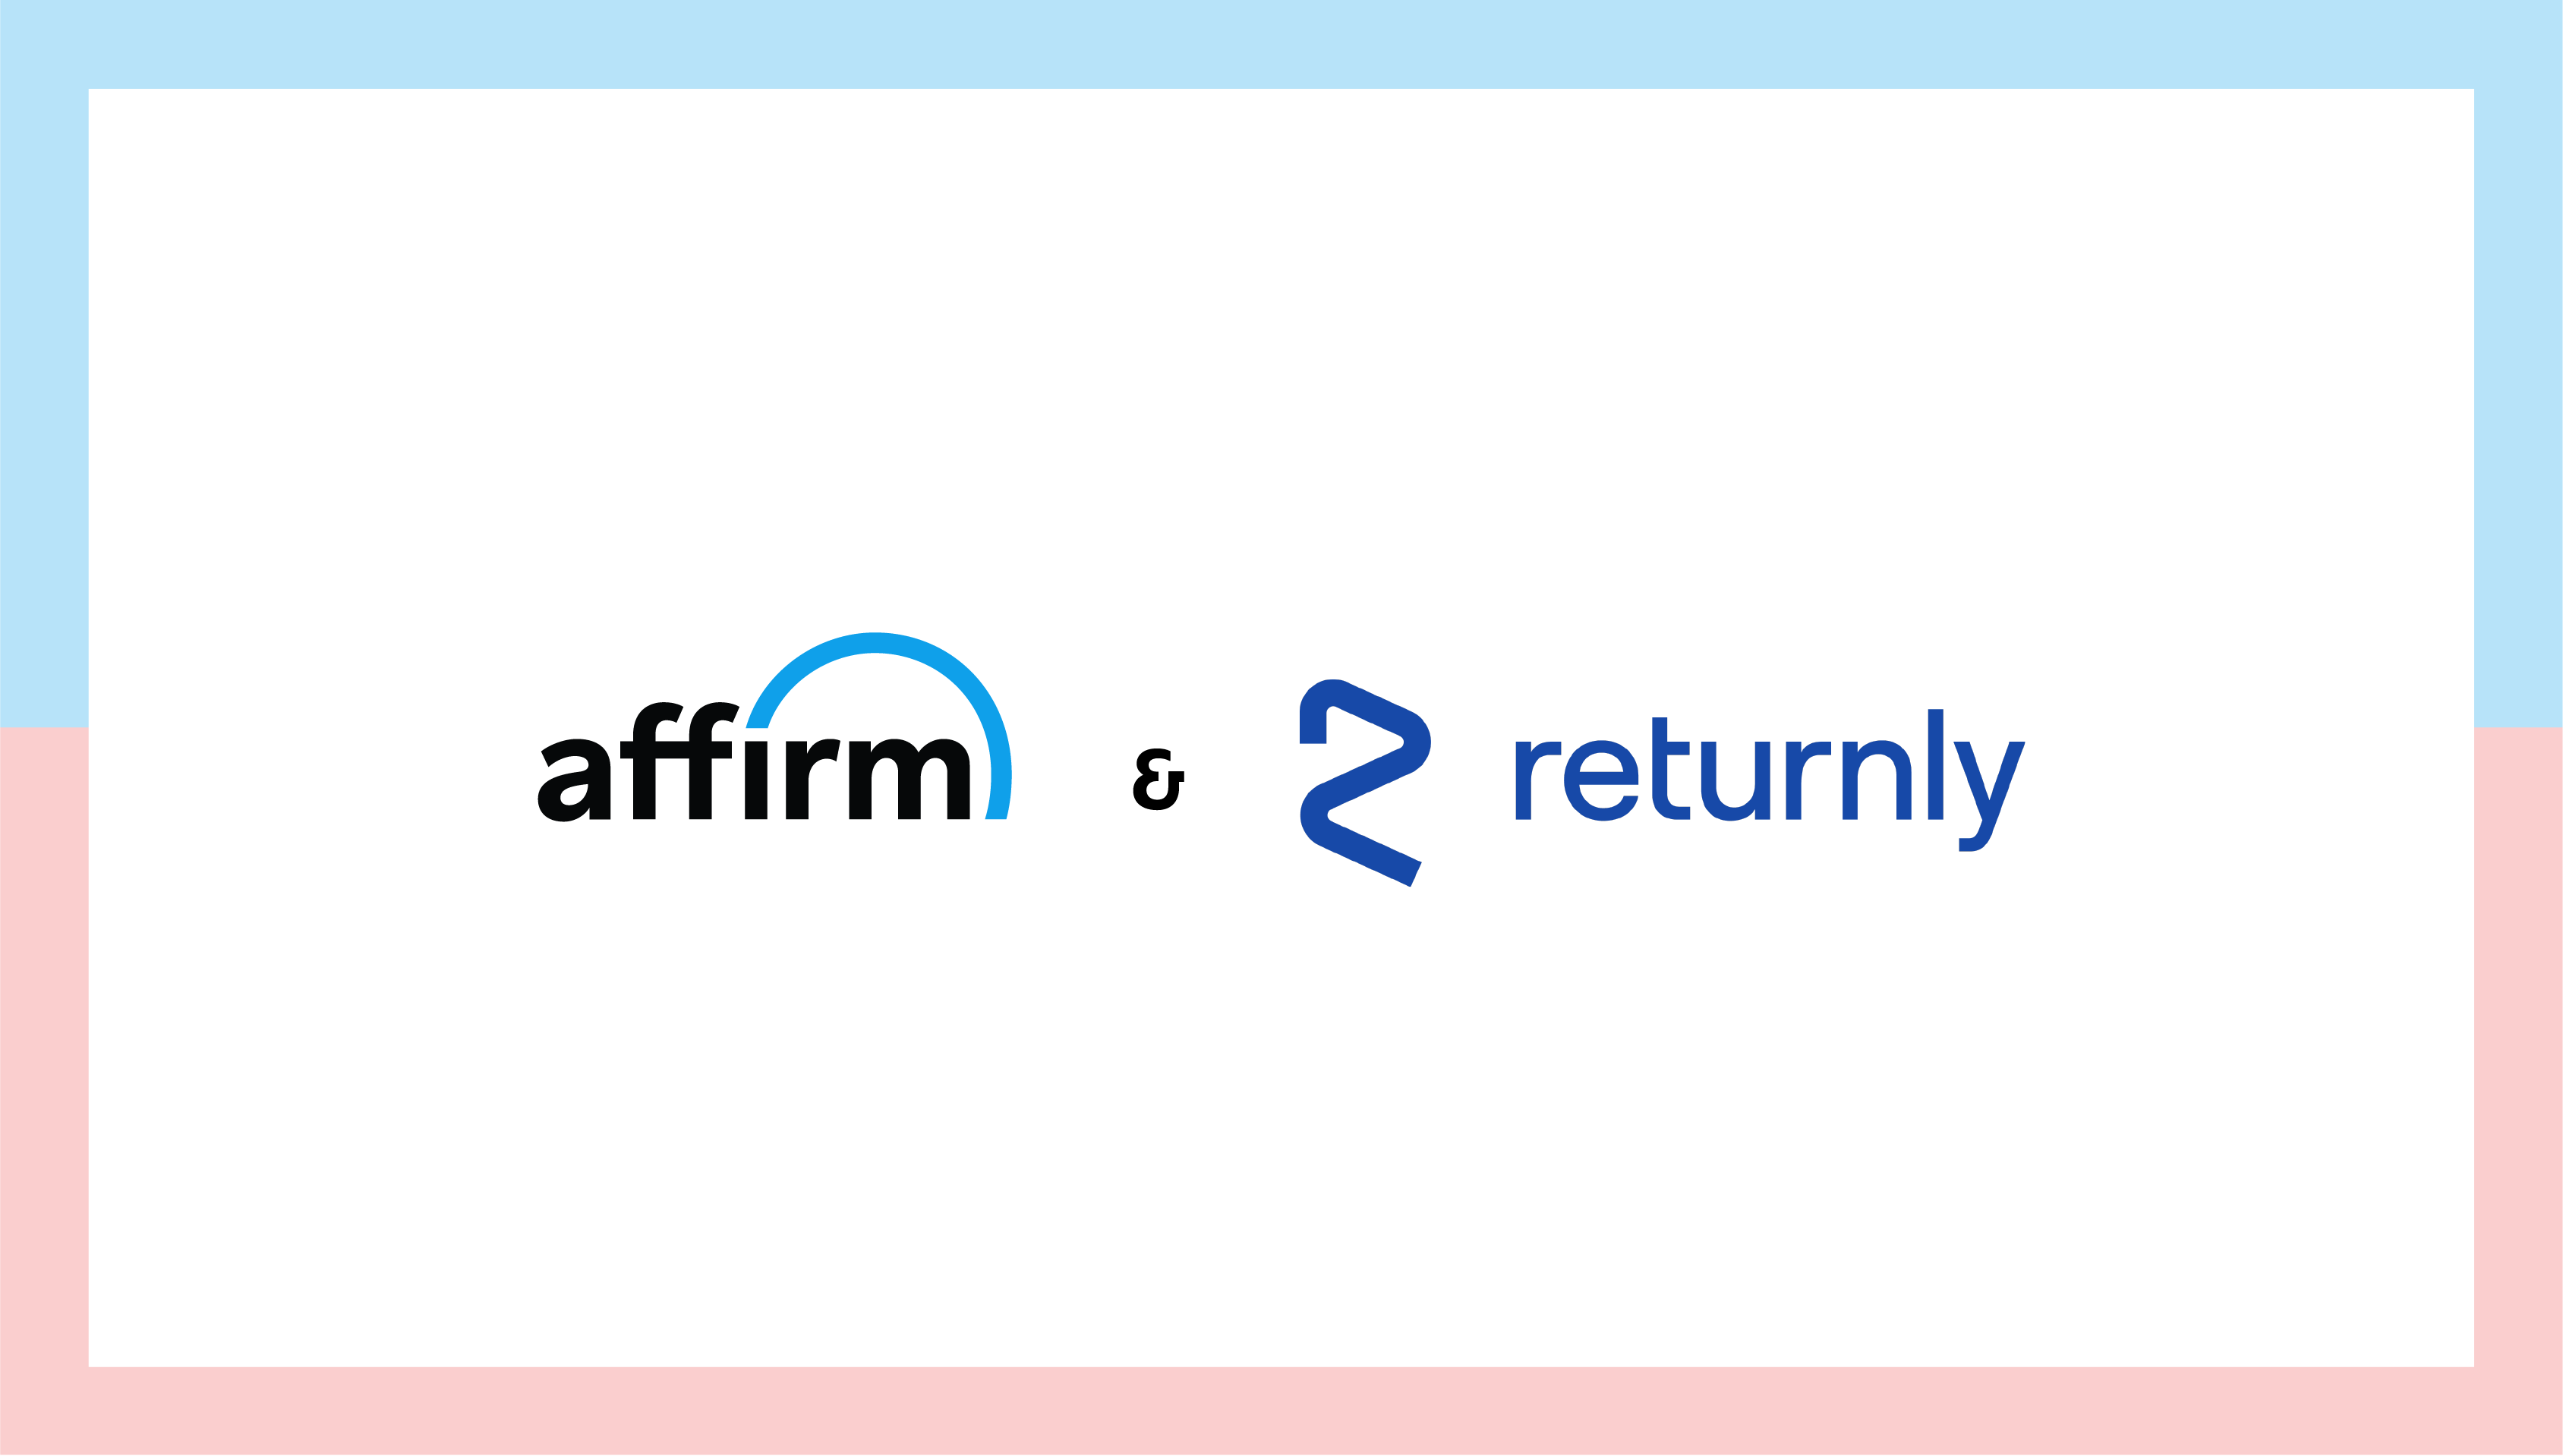 Affirm x Returnly